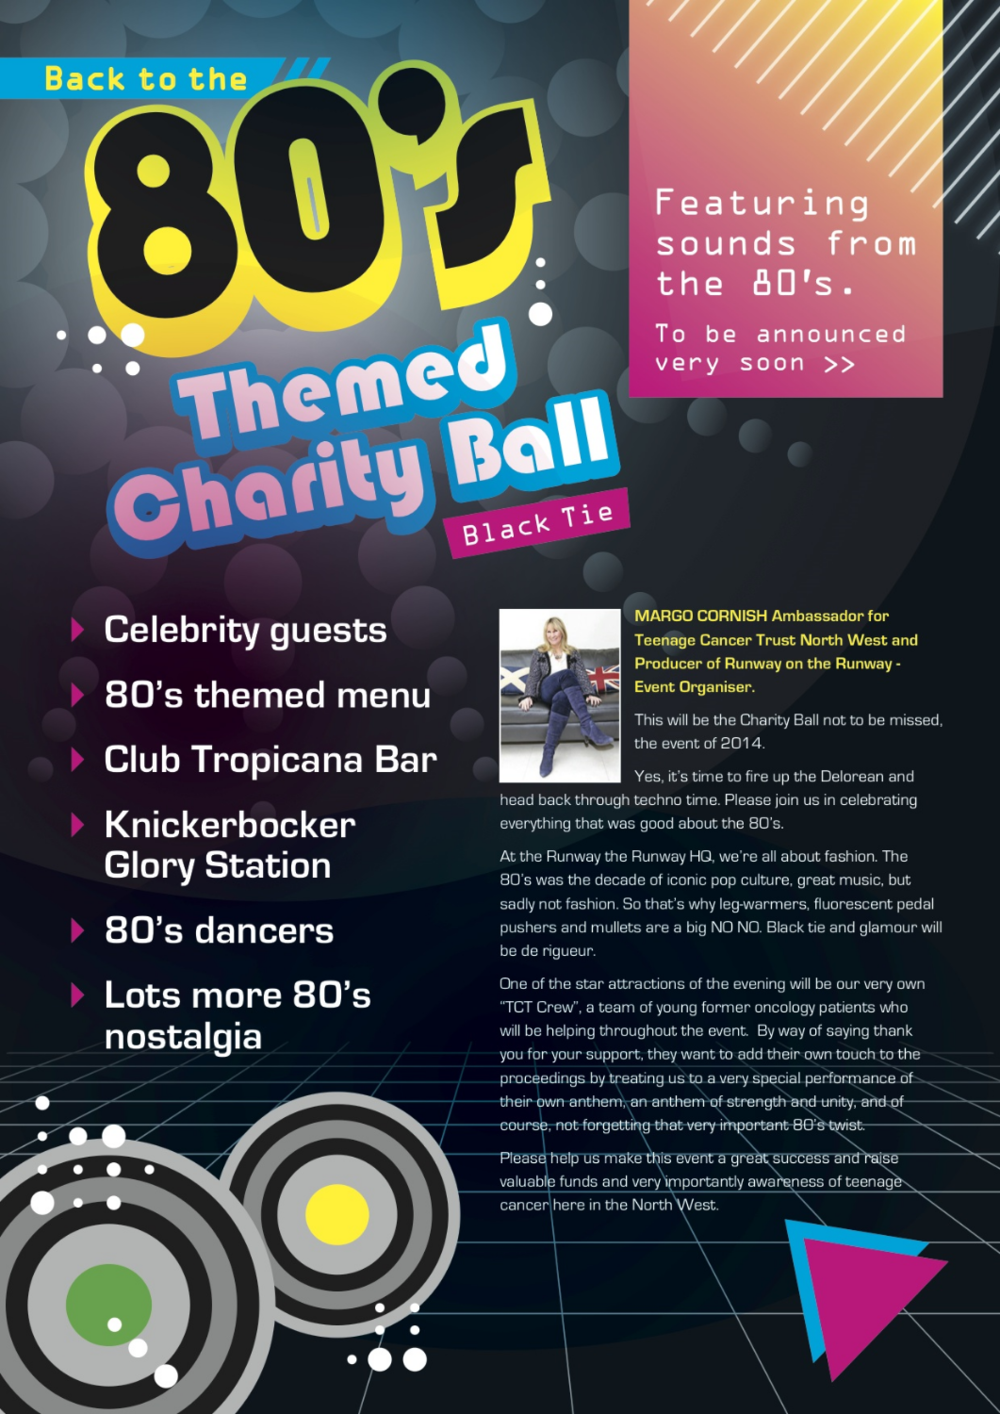 BackToThe80sFlyer-5 Page 2.jpg